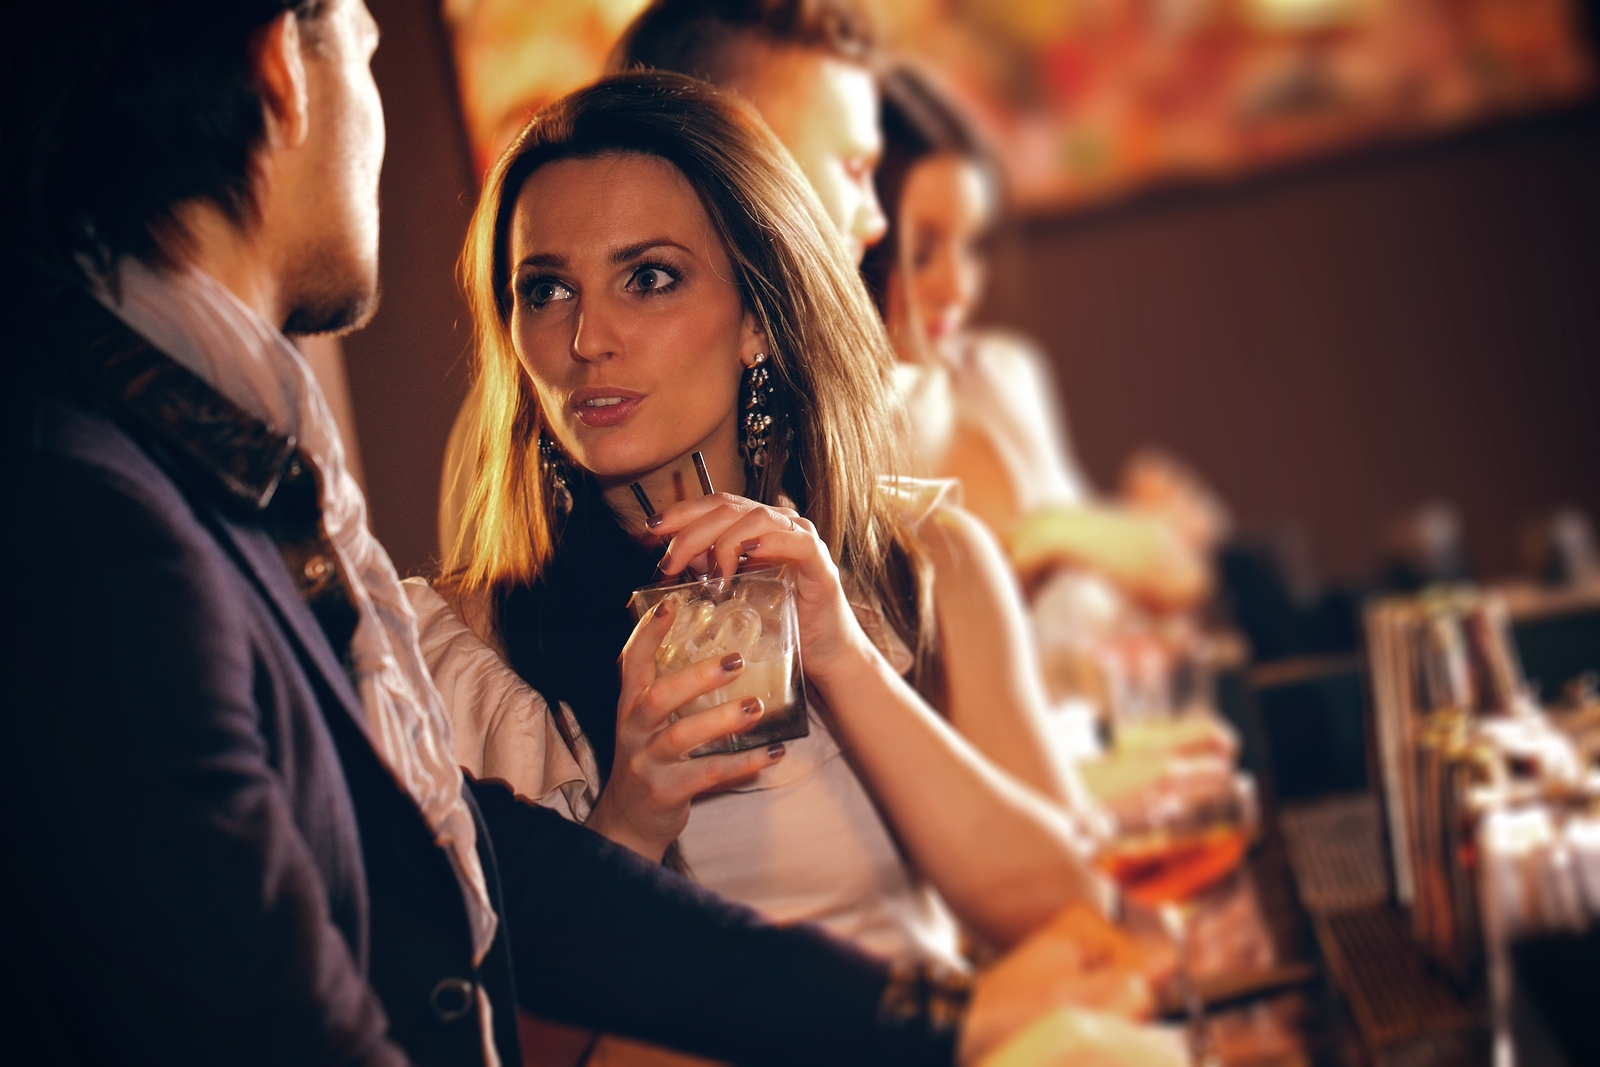 Young woman in conversation with a guy at the bar foreigngirlfriend young woman in conversation with a guy at the bar ccuart Choice Image